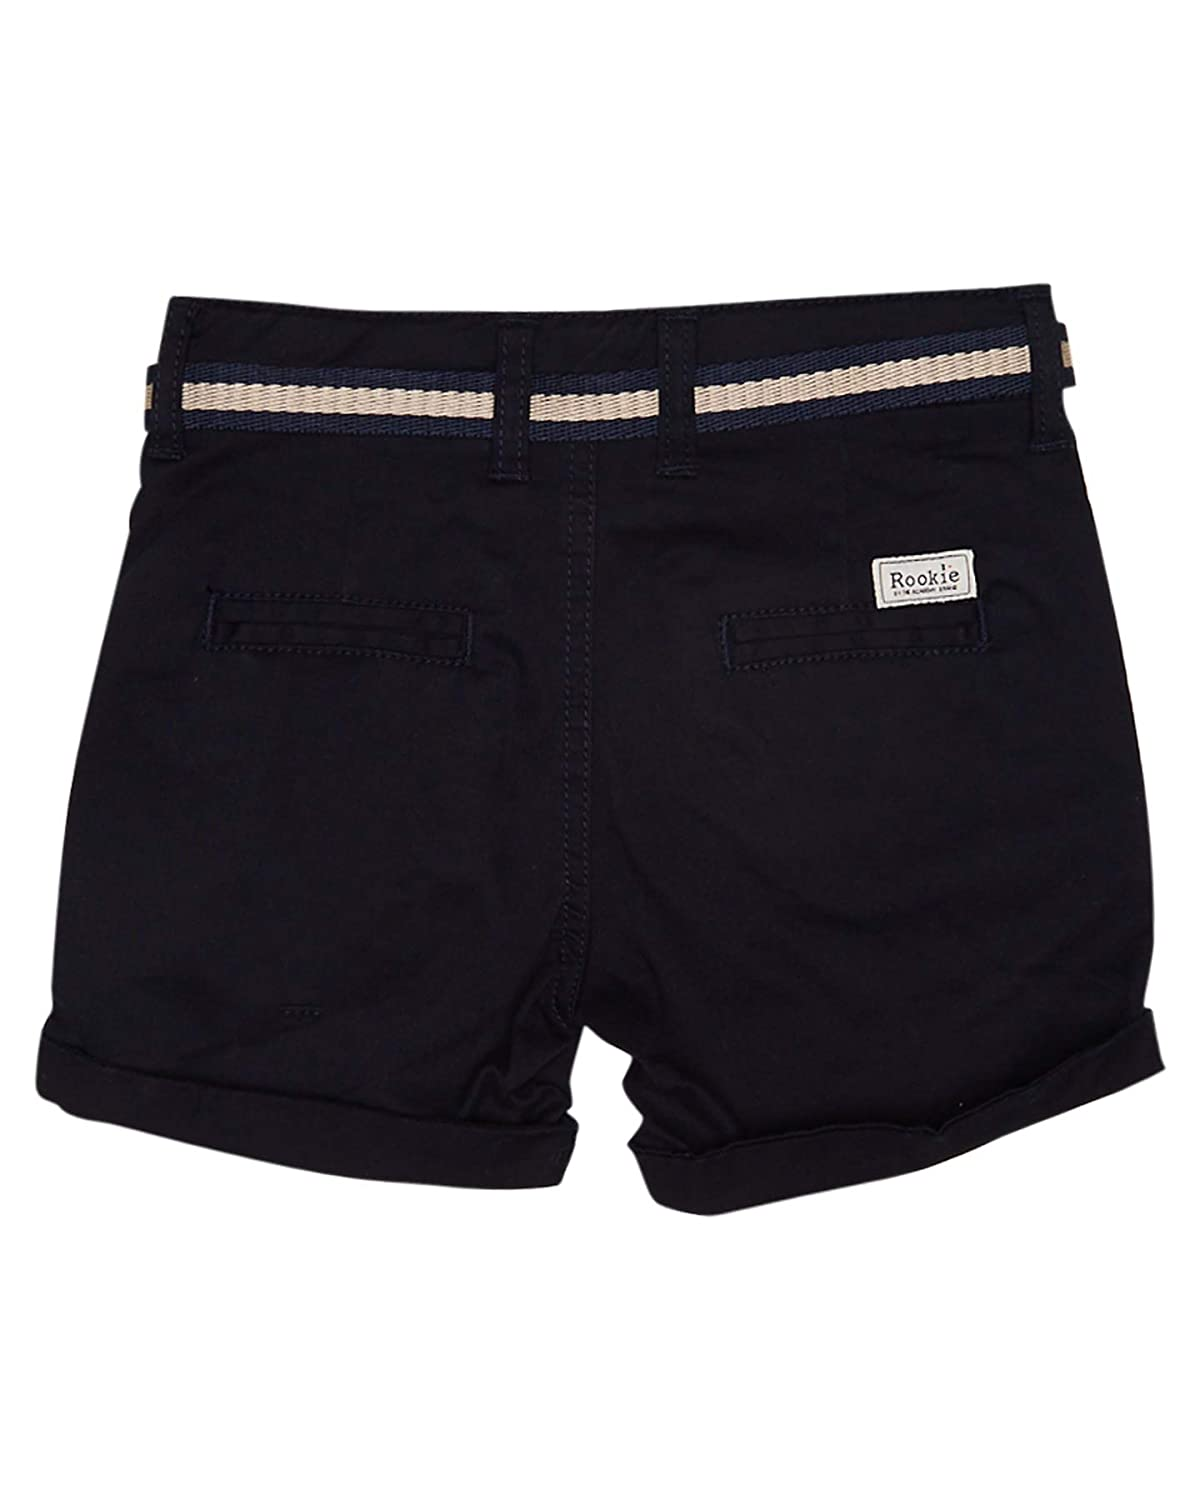 35e4381667 Rookie By The Academy Brand Boys Boys Hayman Short - Kids Cotton ...